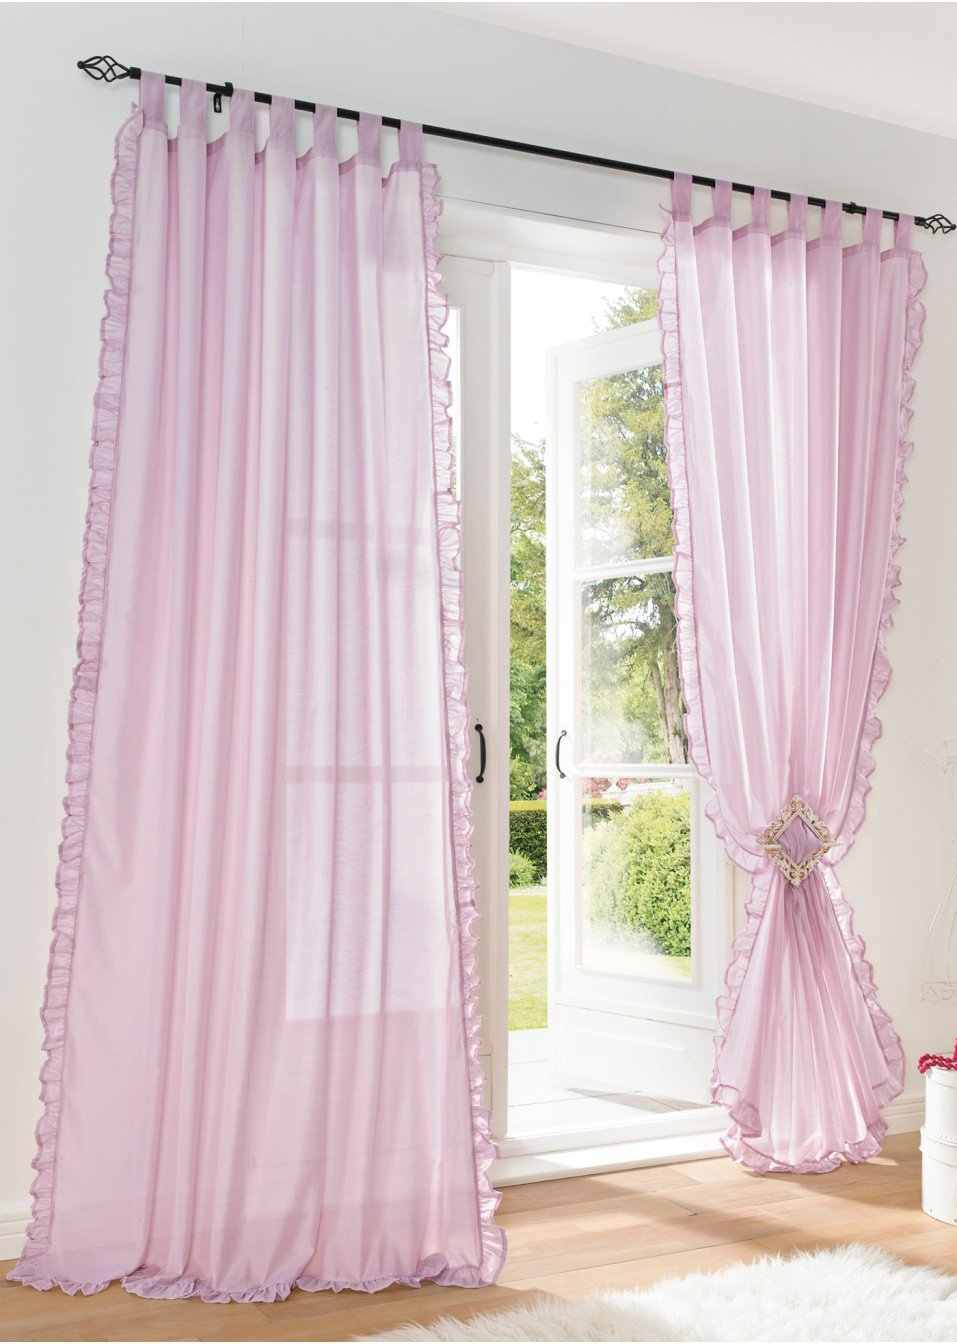 1pair of Sheer Curtain,2pcs Beautiful ruffles white pink yellow colors window curtains,table top,hooking,rod pocket